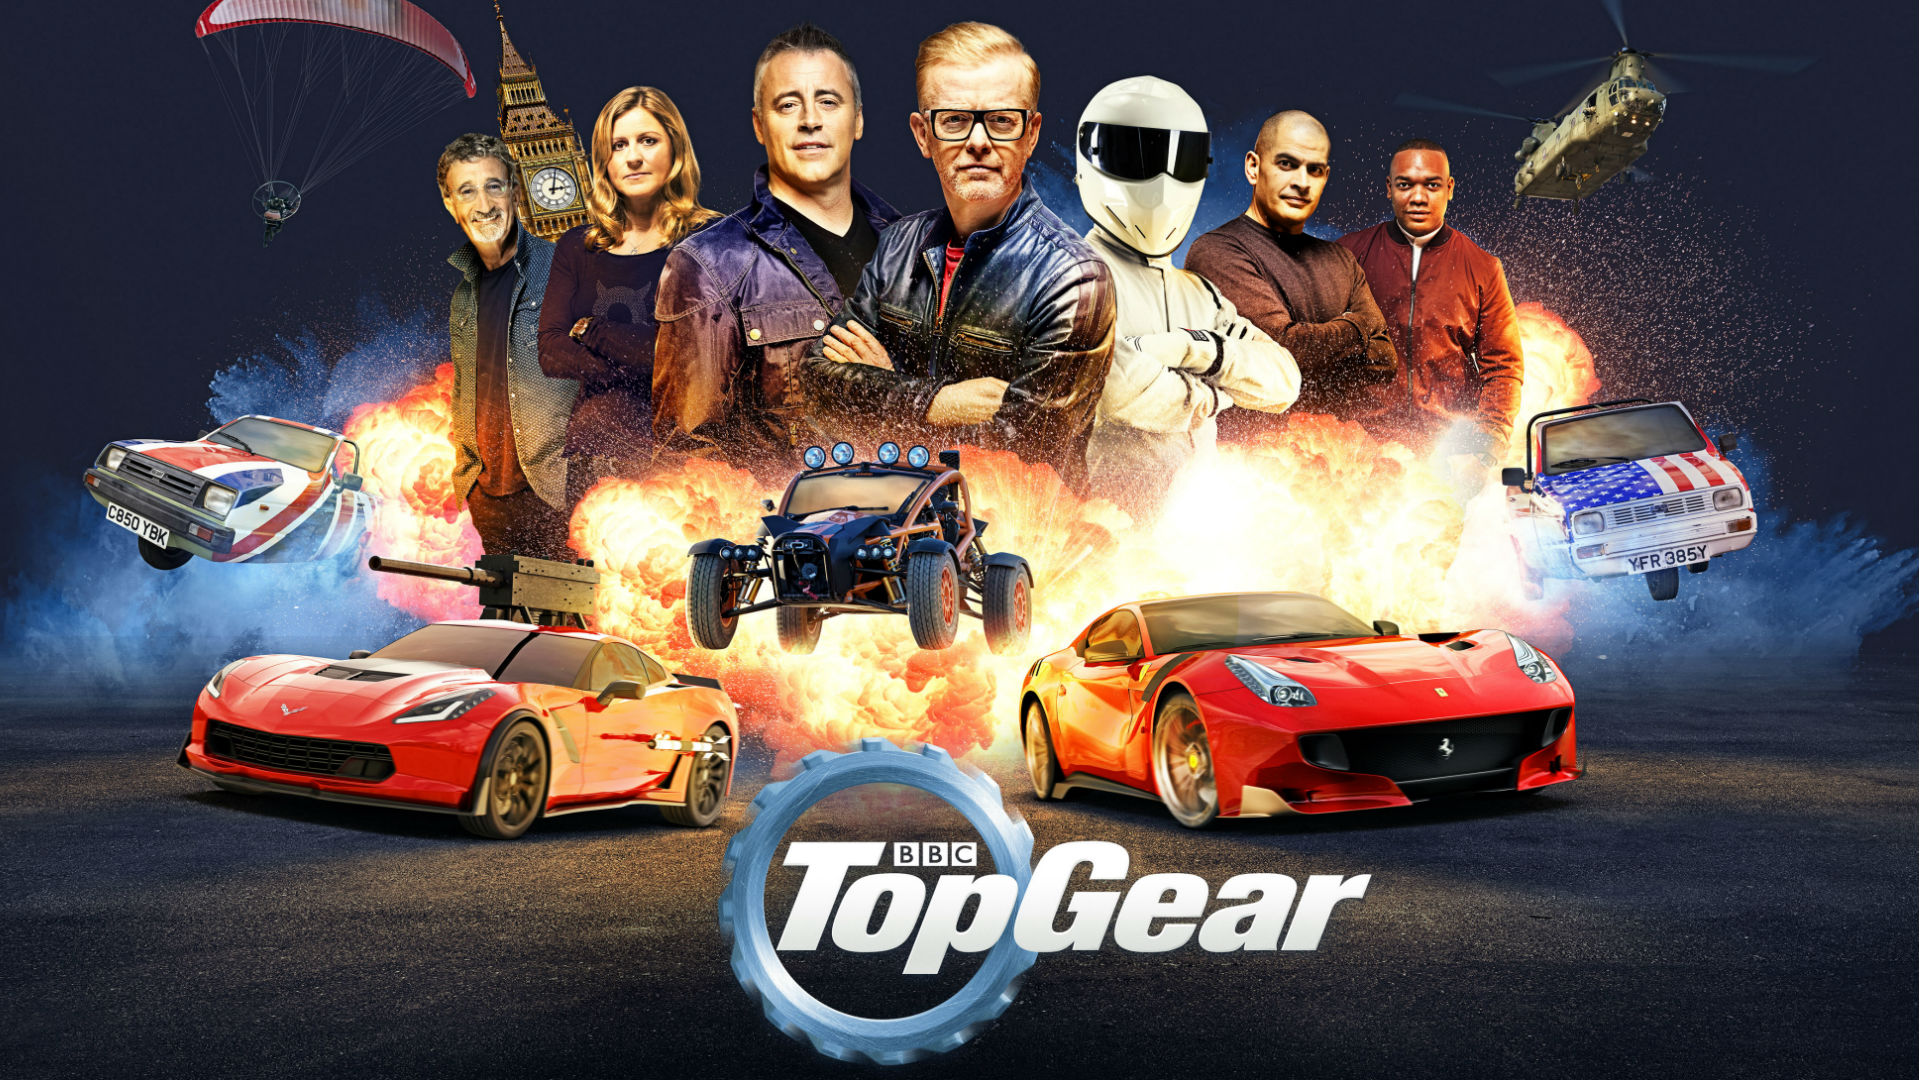 Top Gear's Chris Evans and the new presenting team